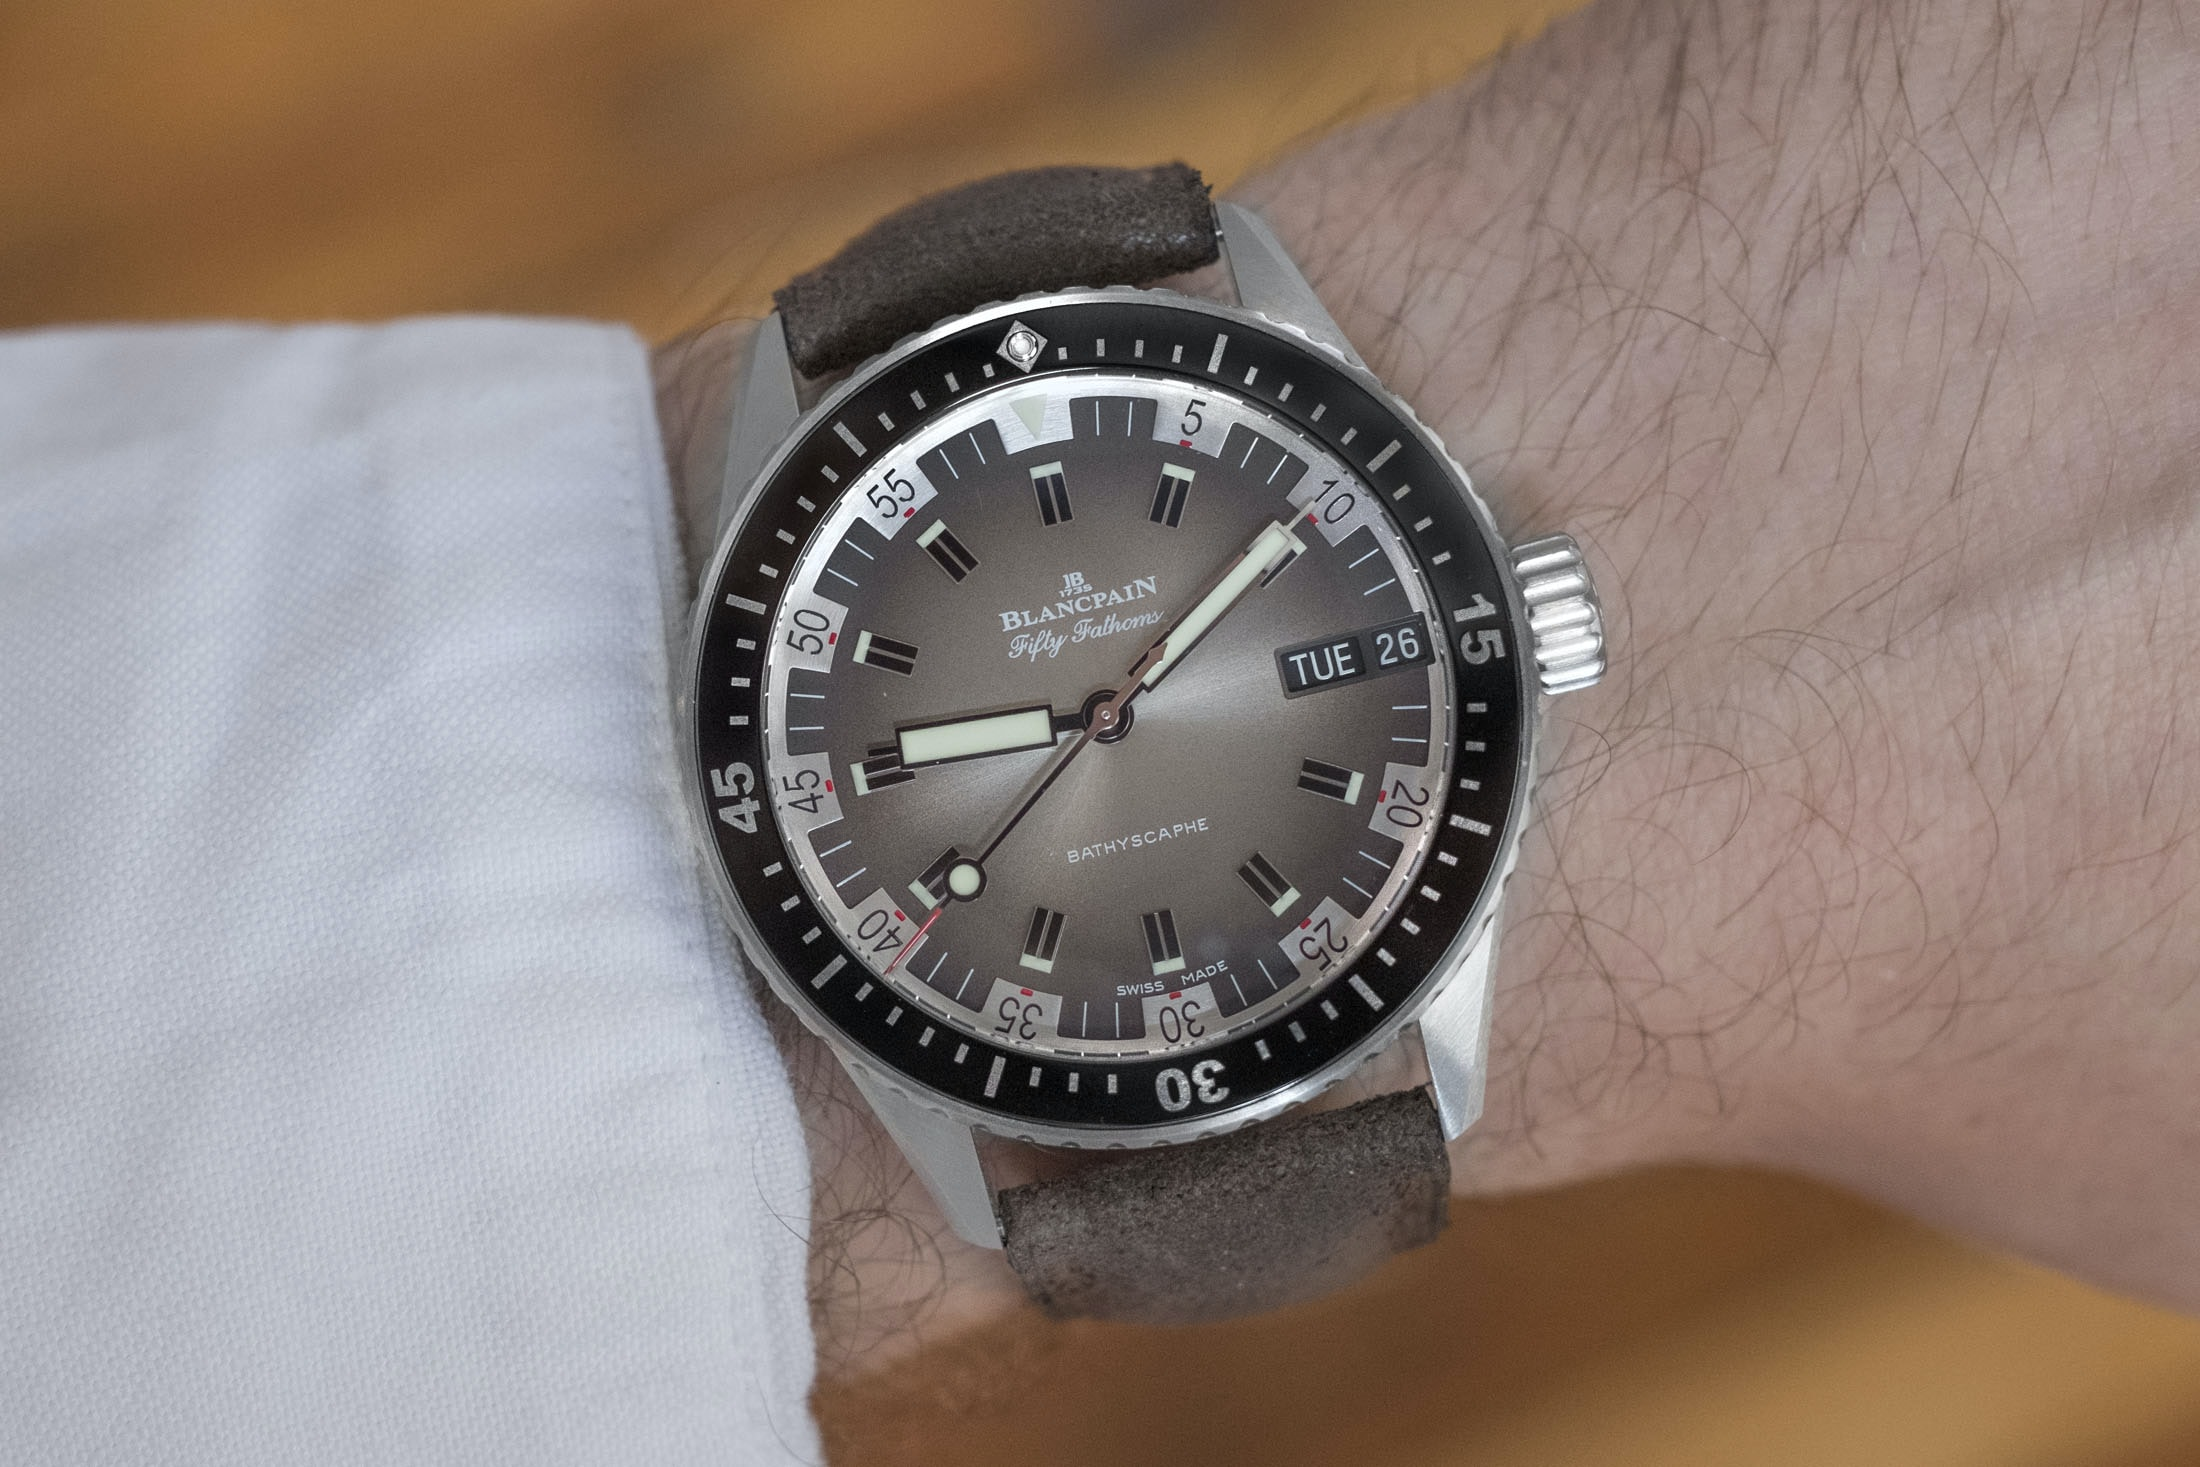 Review: The Blancpain Fifty Fathoms Bathyscaphe Day Date 70s DSCF8692